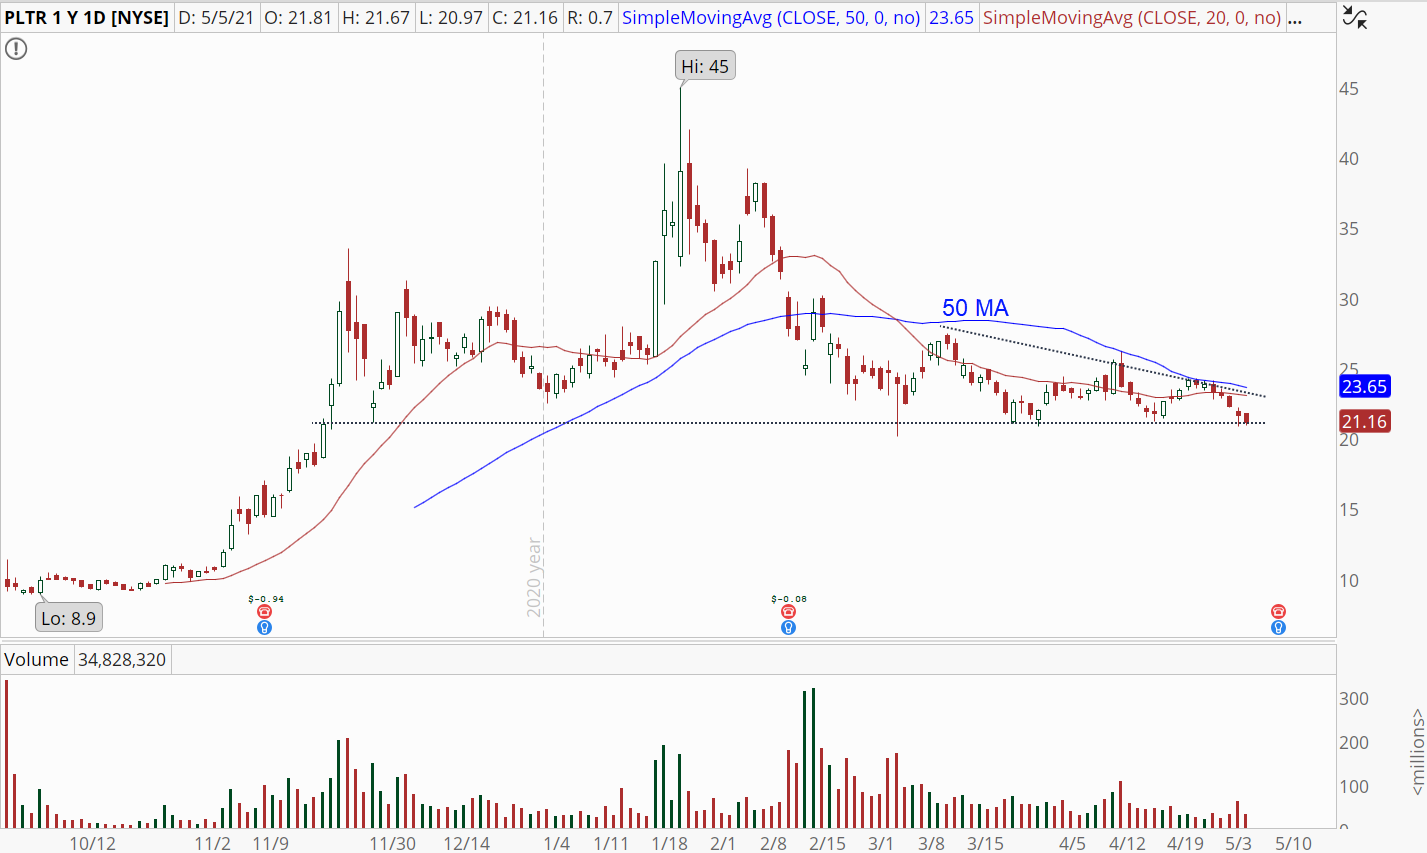 Palantir Technologies (PLTR) stock with imminent support break